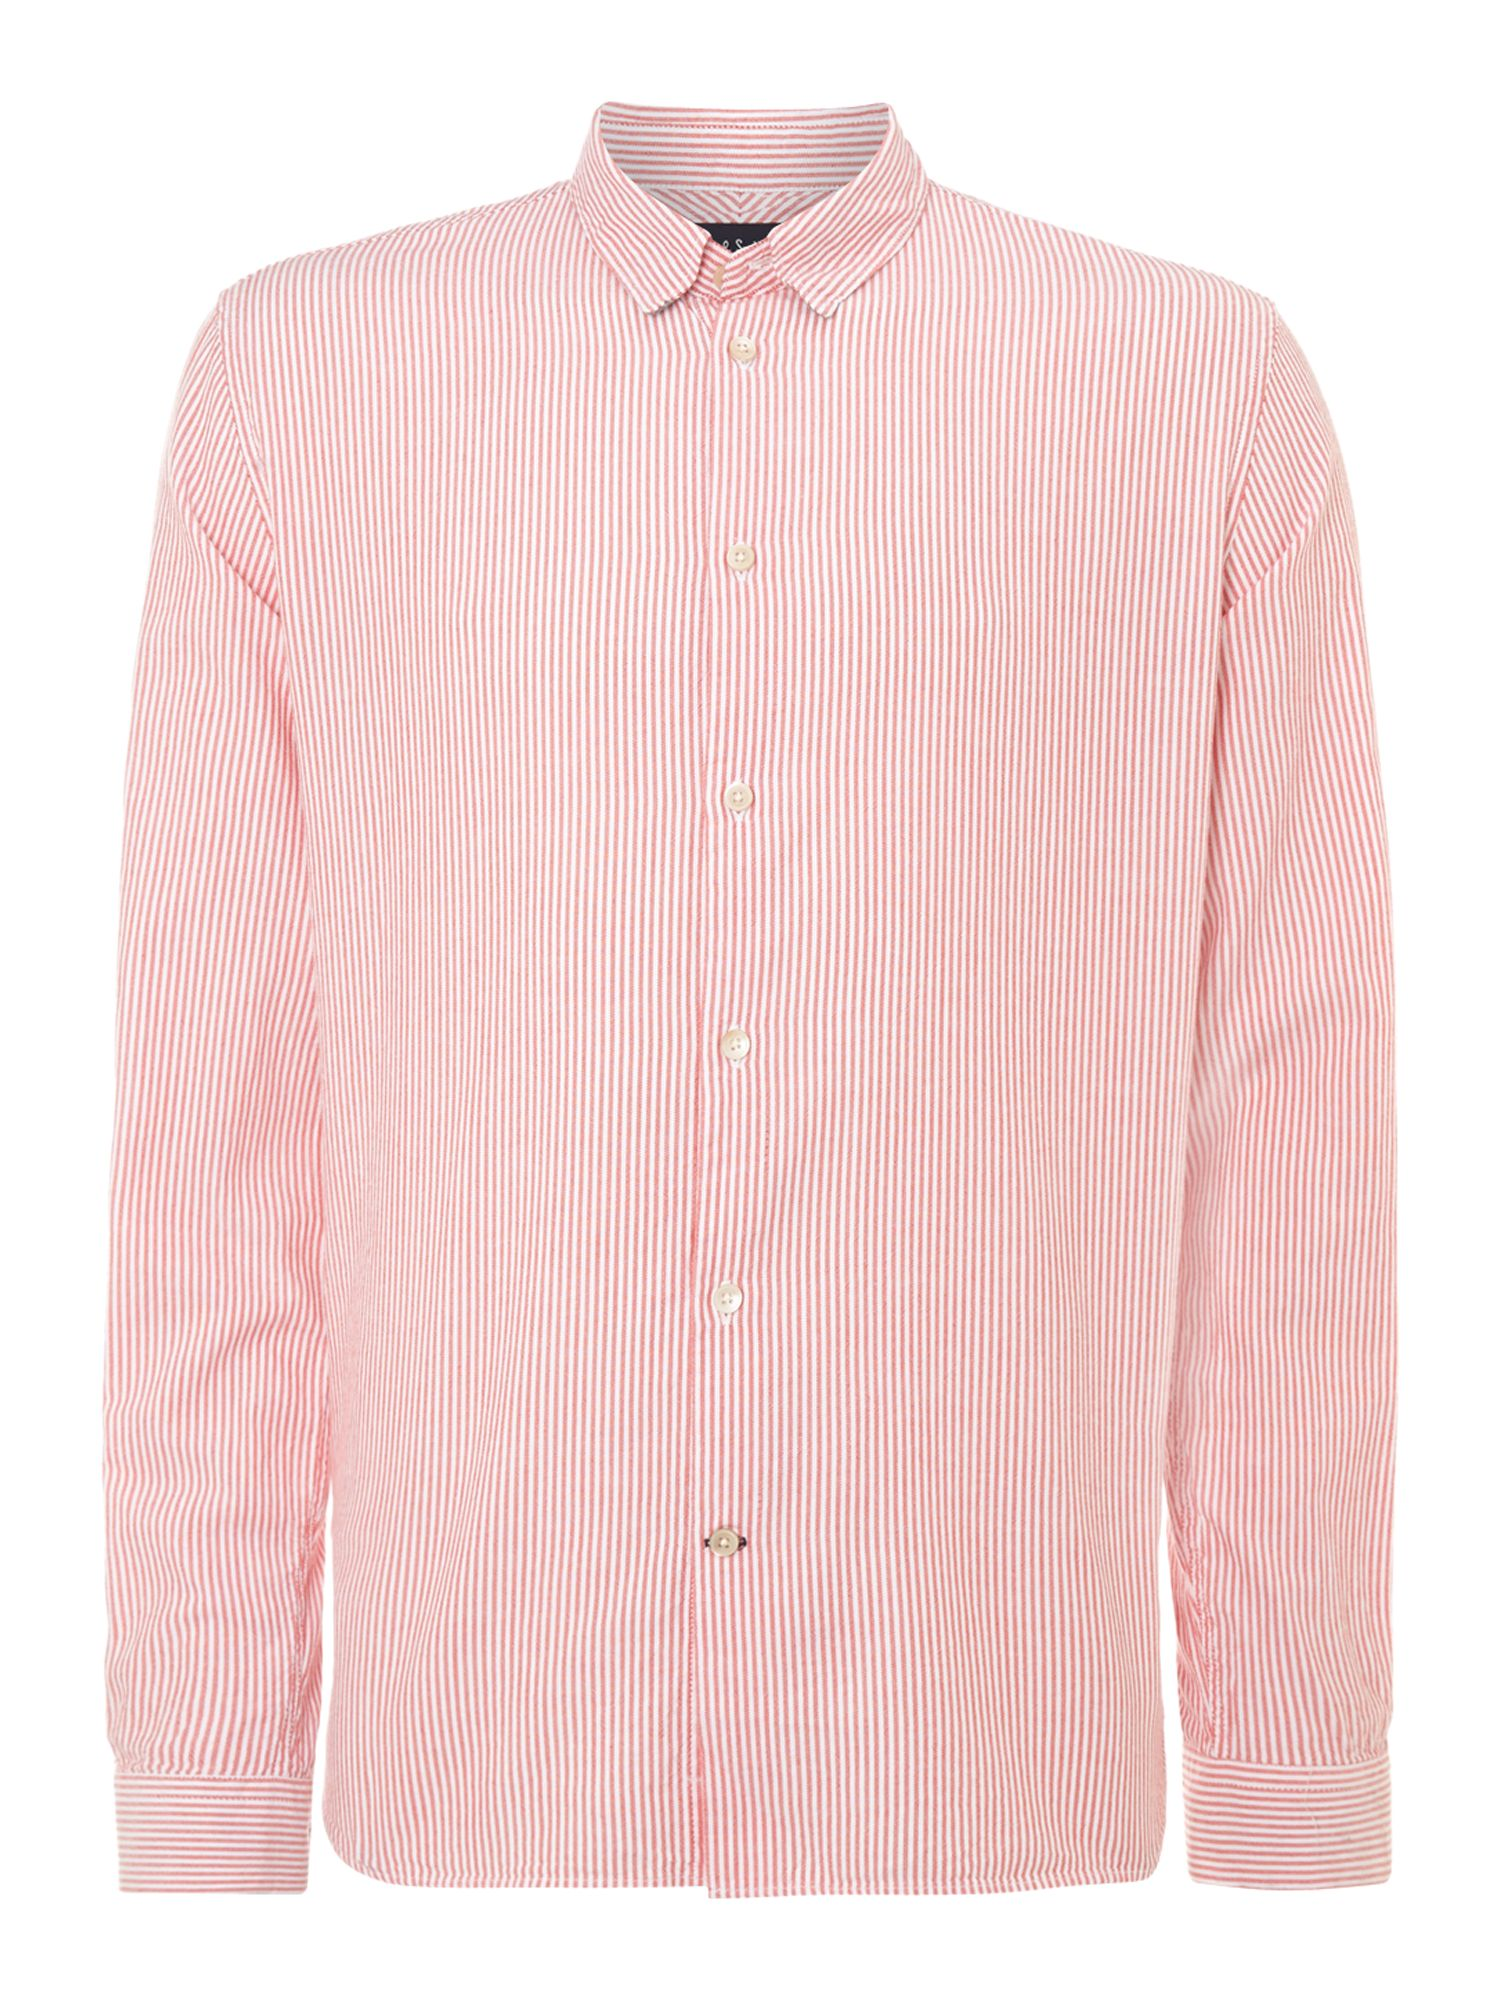 Long sleeved stripe shirt